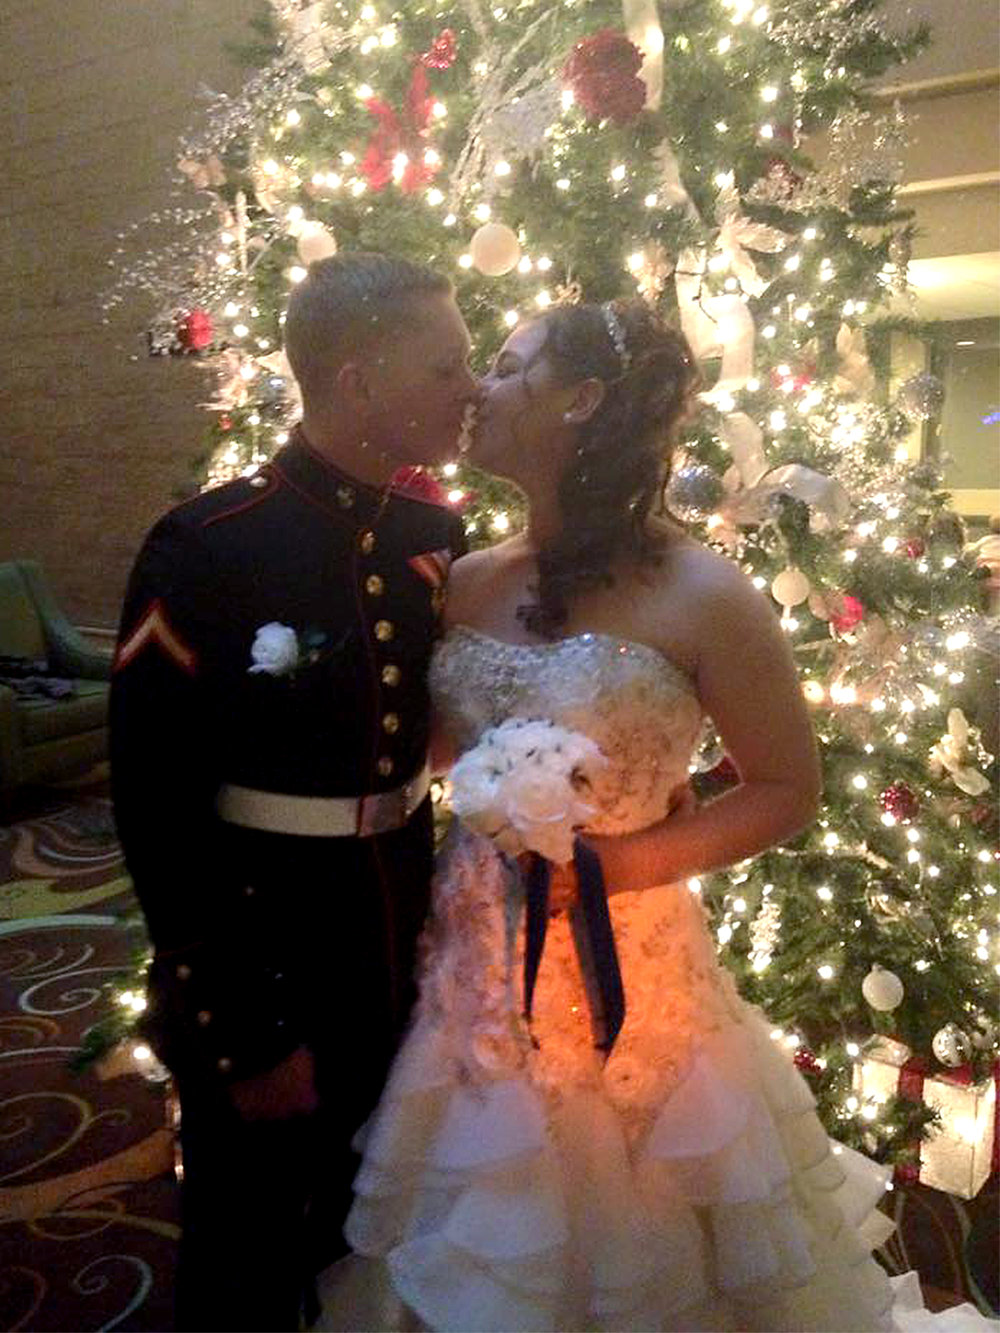 Dee Hubay and Dan Bryan get married on Tuesday, Nov. 24, 2015 after Hubay's graduation from boot camp.